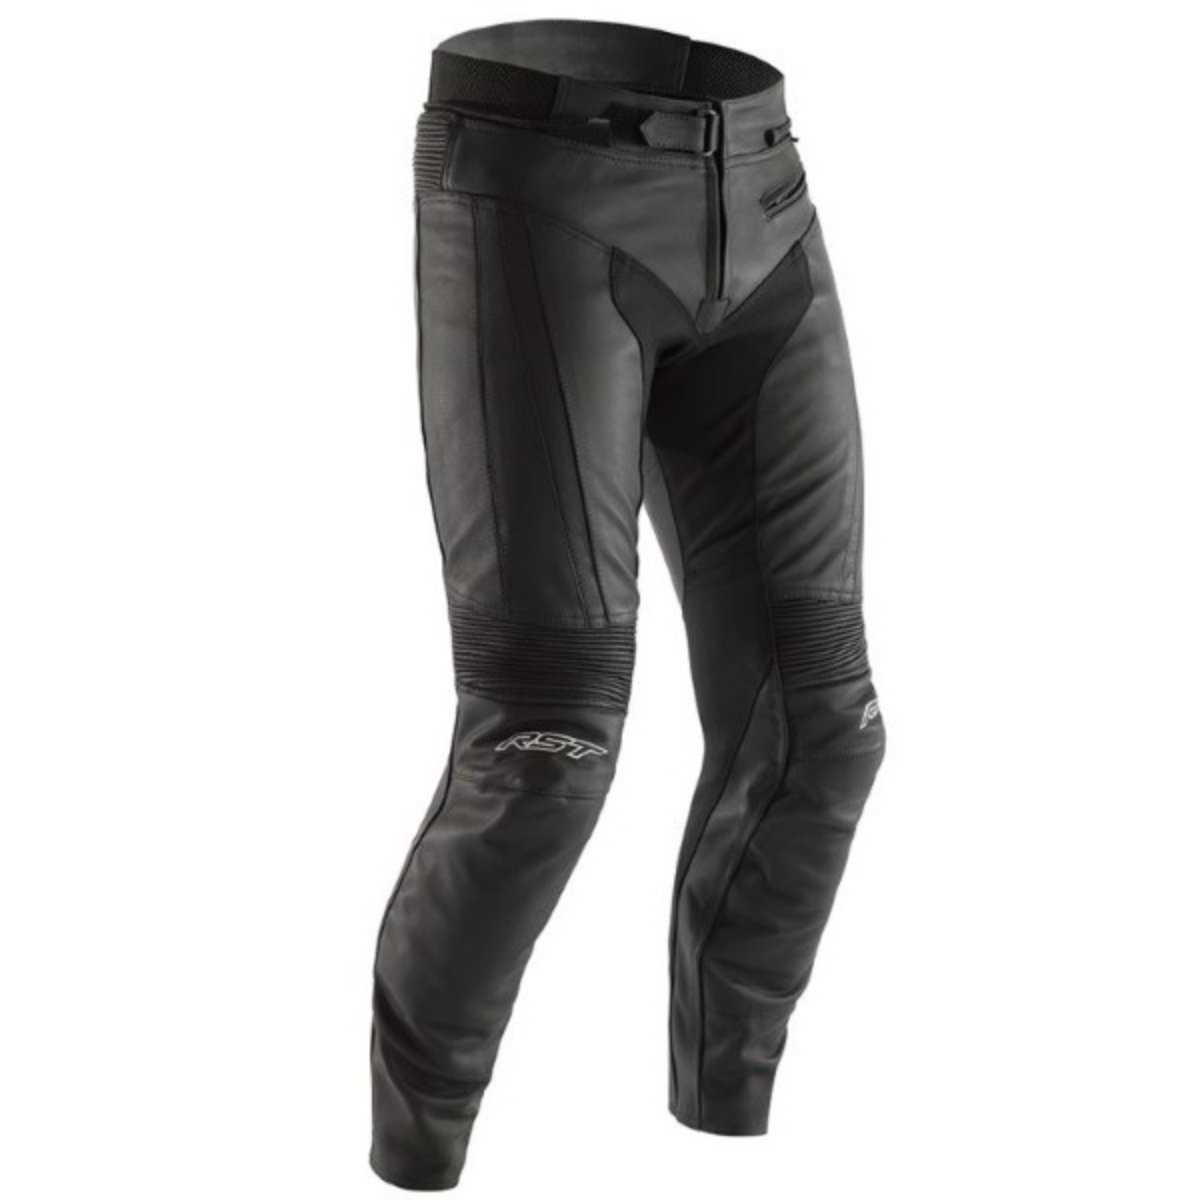 RST R-Sport CE Black Leather Motorcycle Jeans